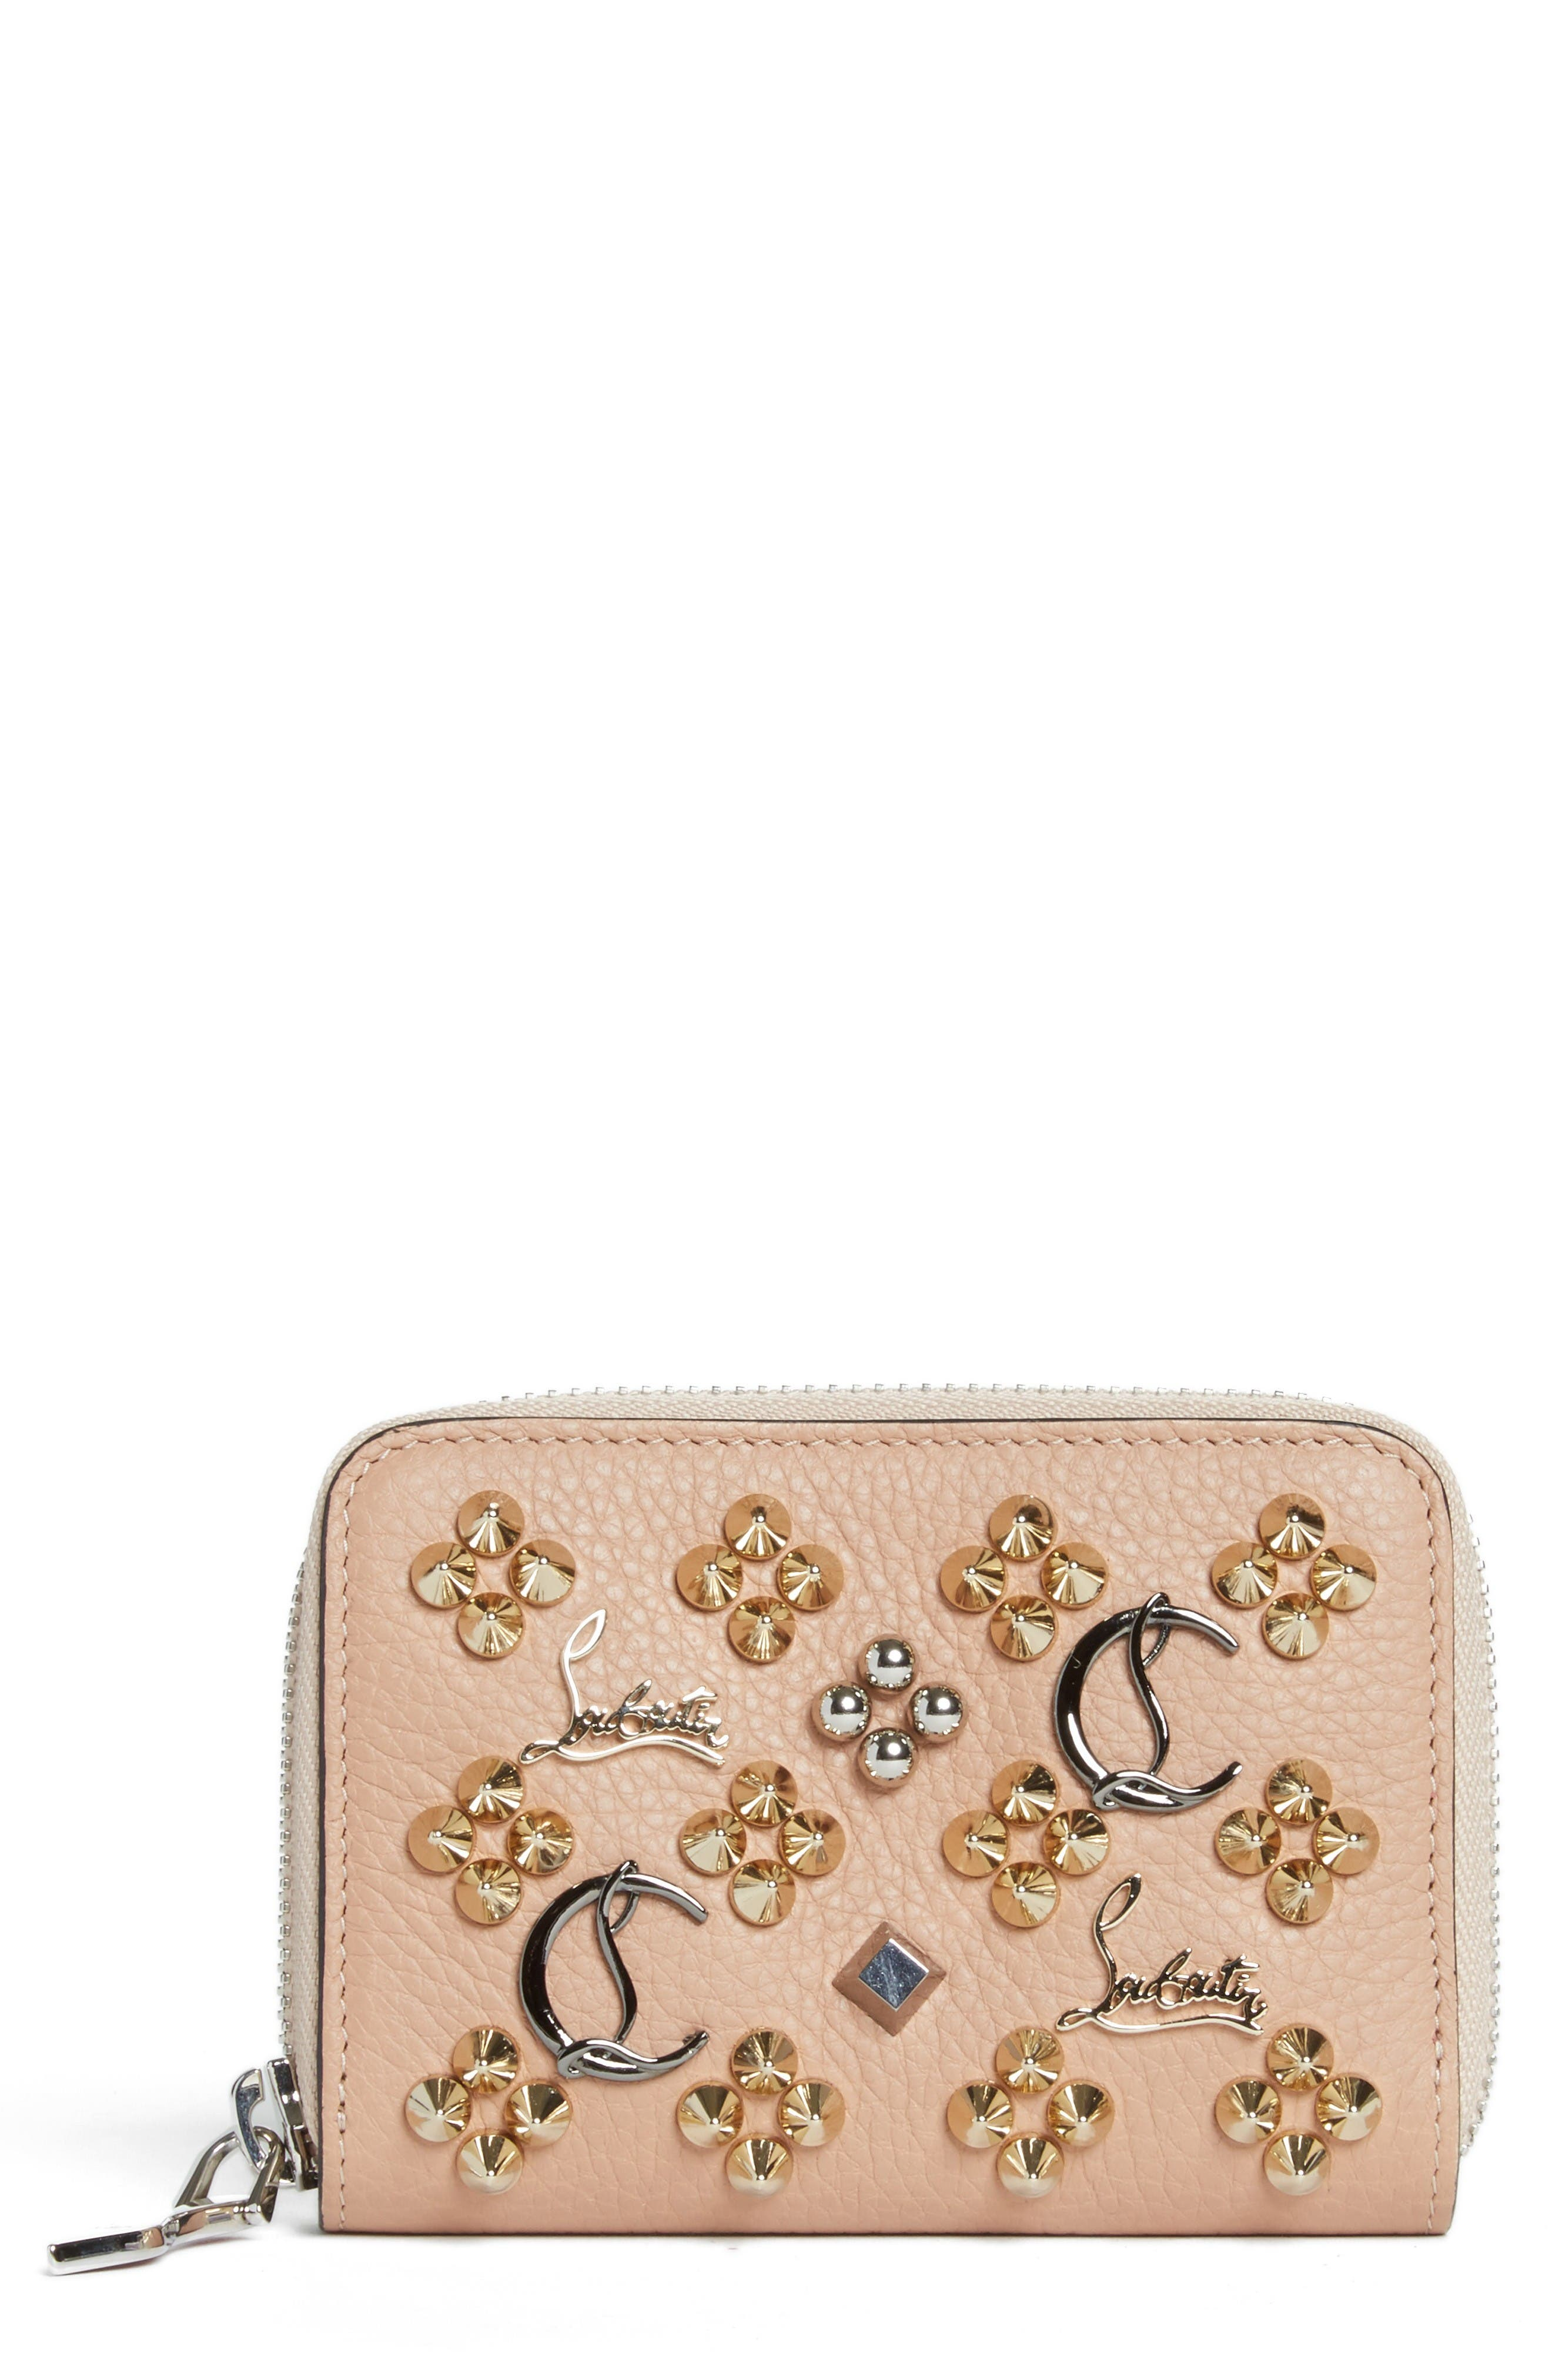 Christian Louboutin Panettone Leather Coin Purse